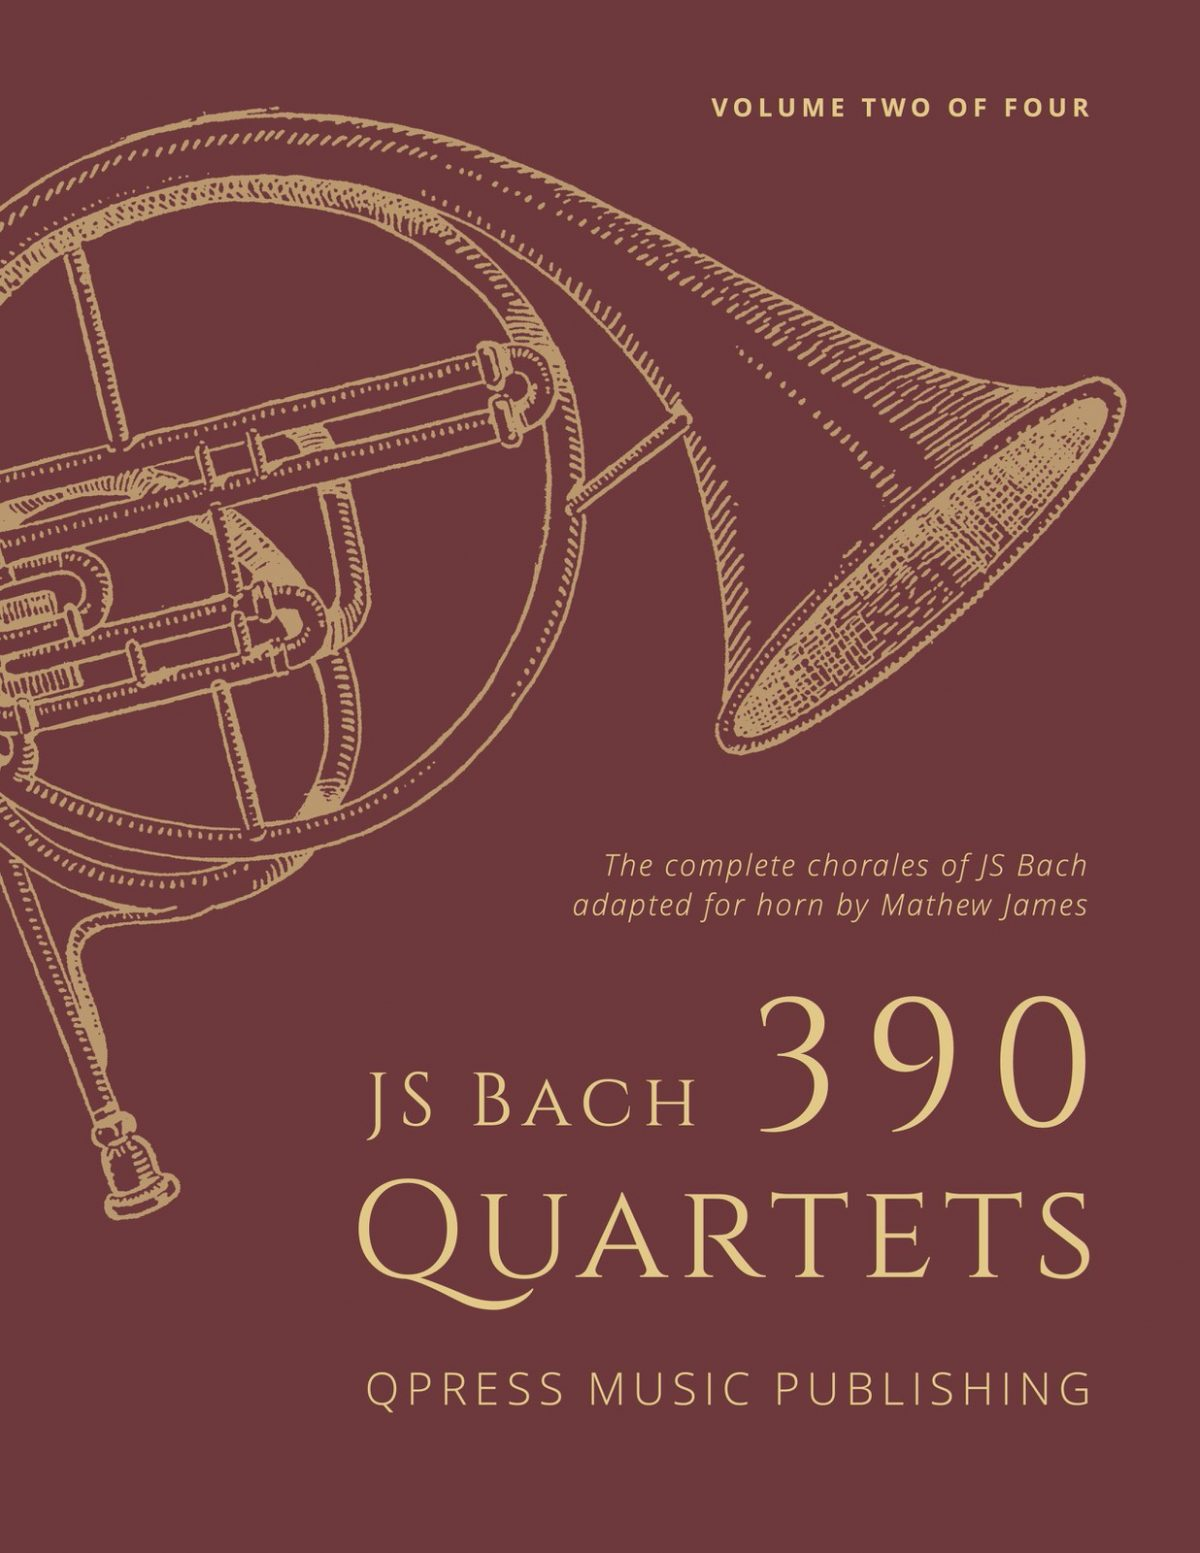 Bach-James, 390 Quartets of J.S. Bach for French Horn Vol.2-p001